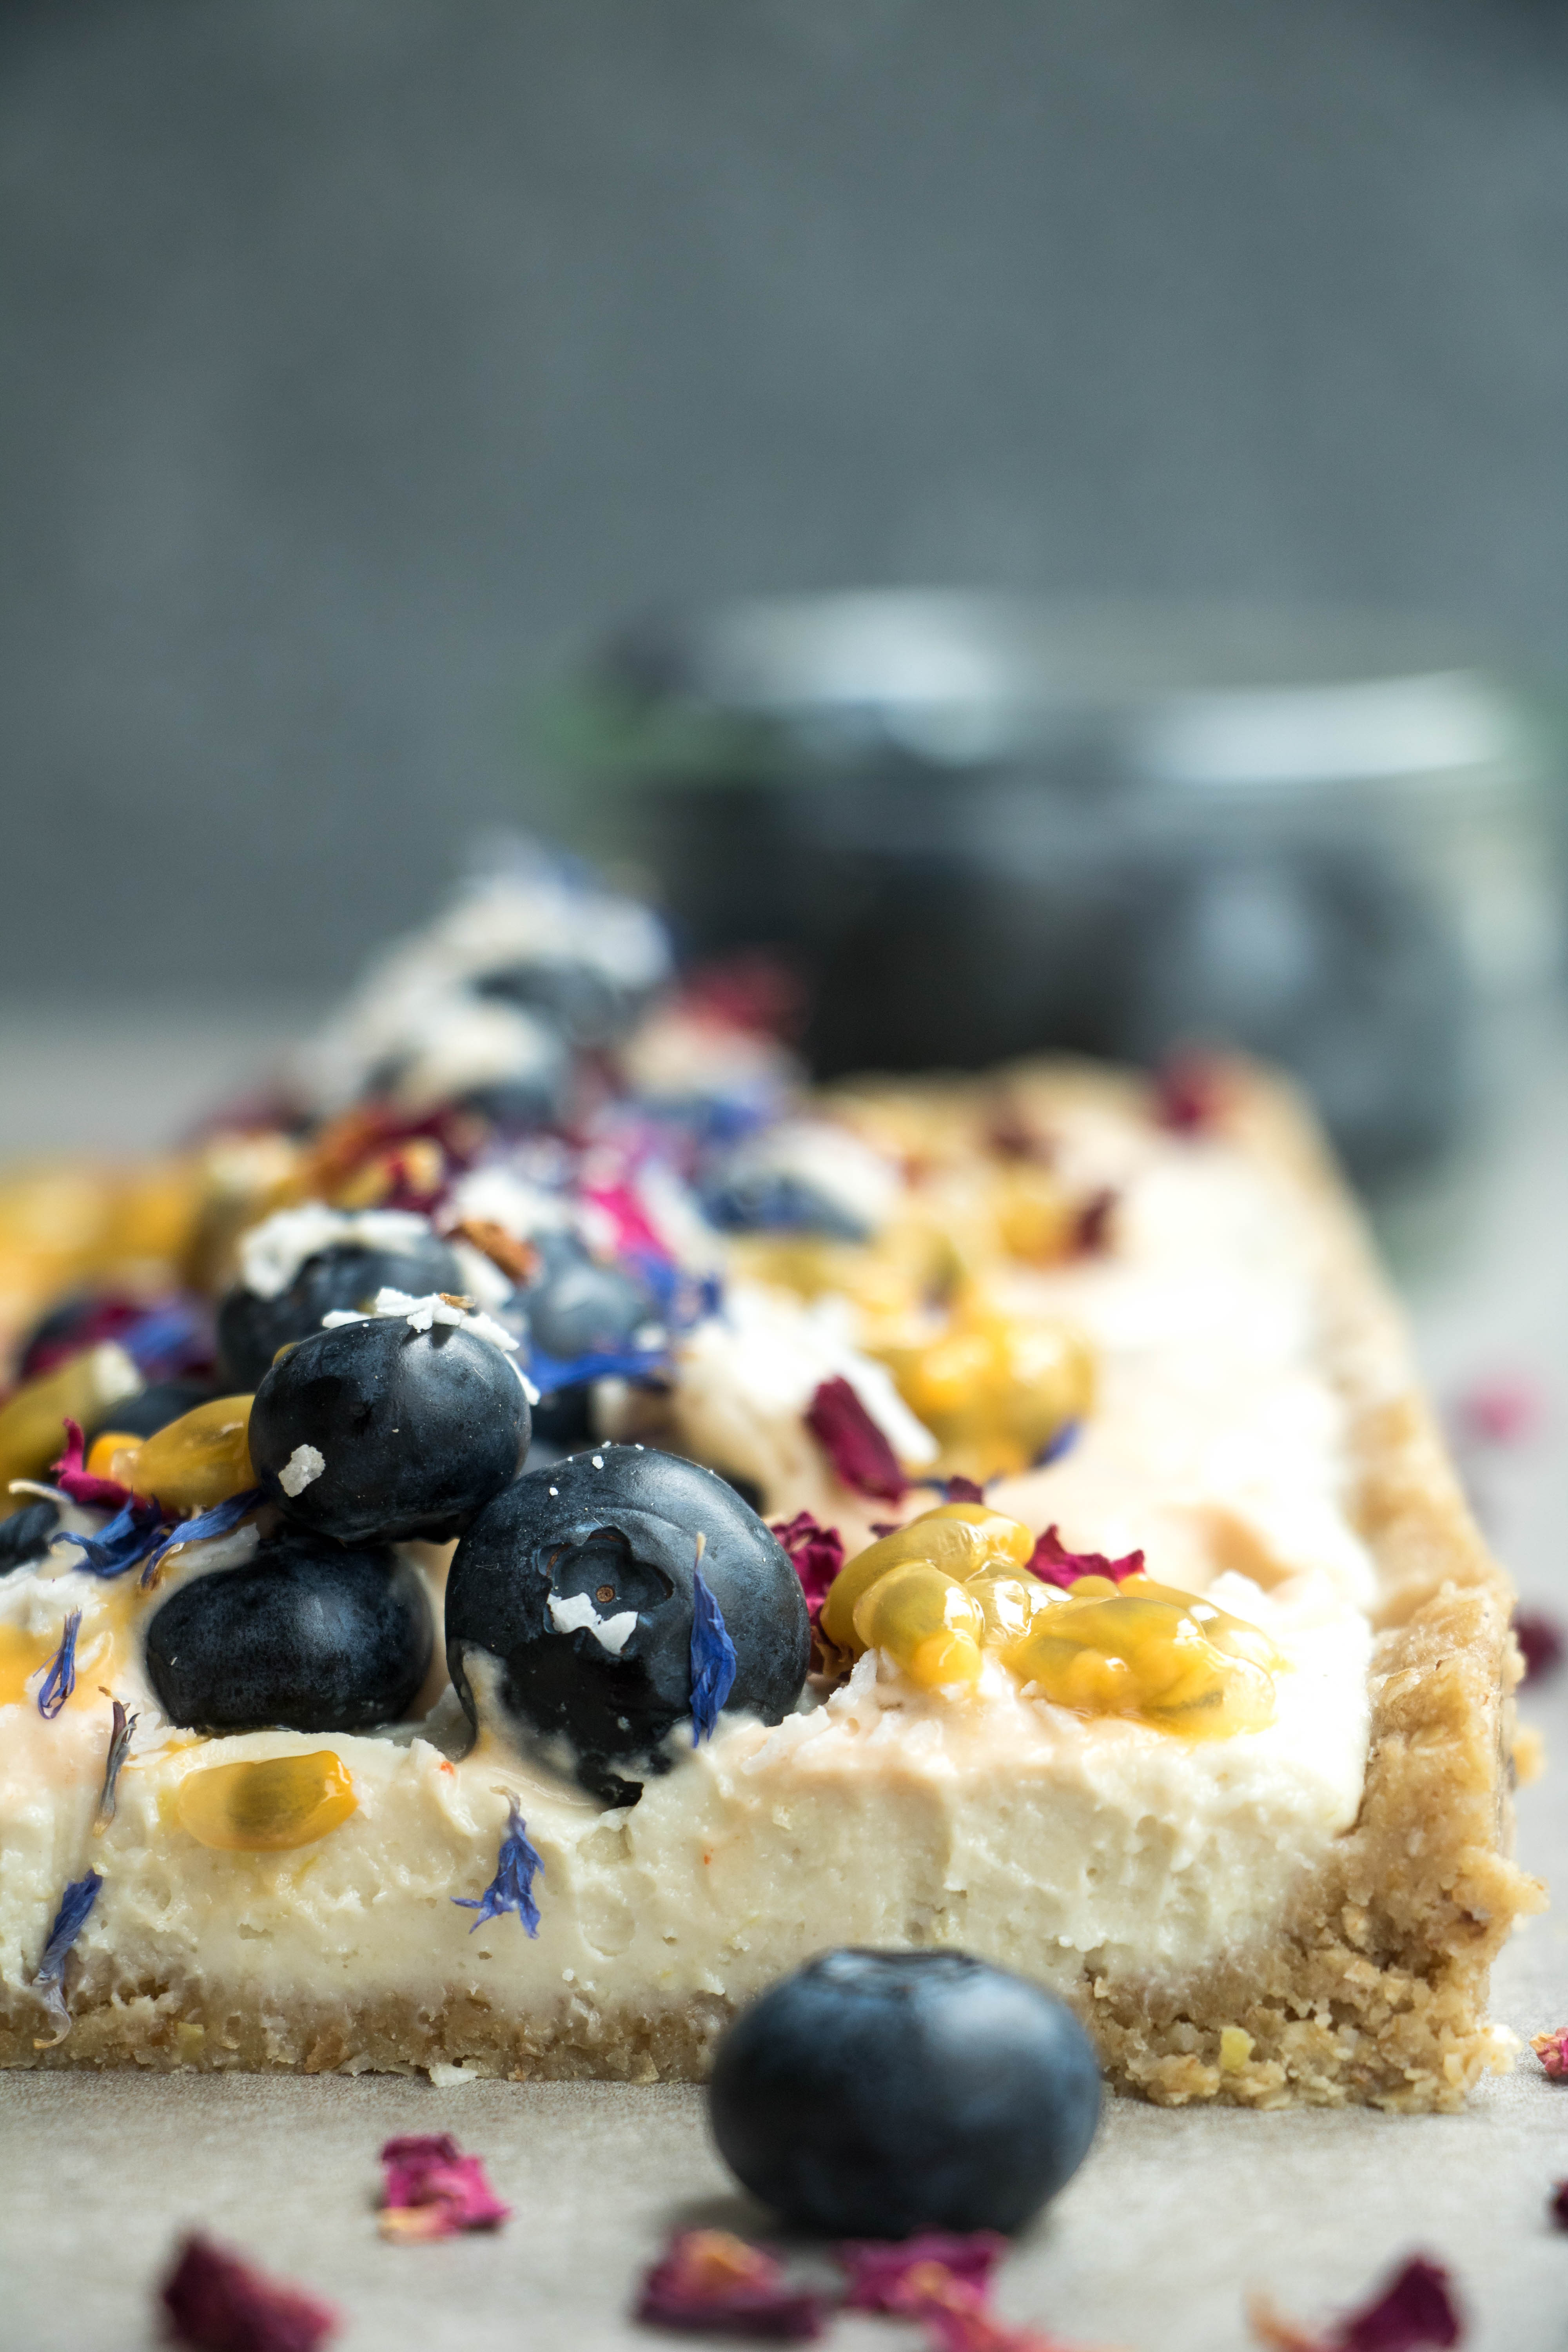 Vegan Lemon Cheesecake With Passionfruit Cream